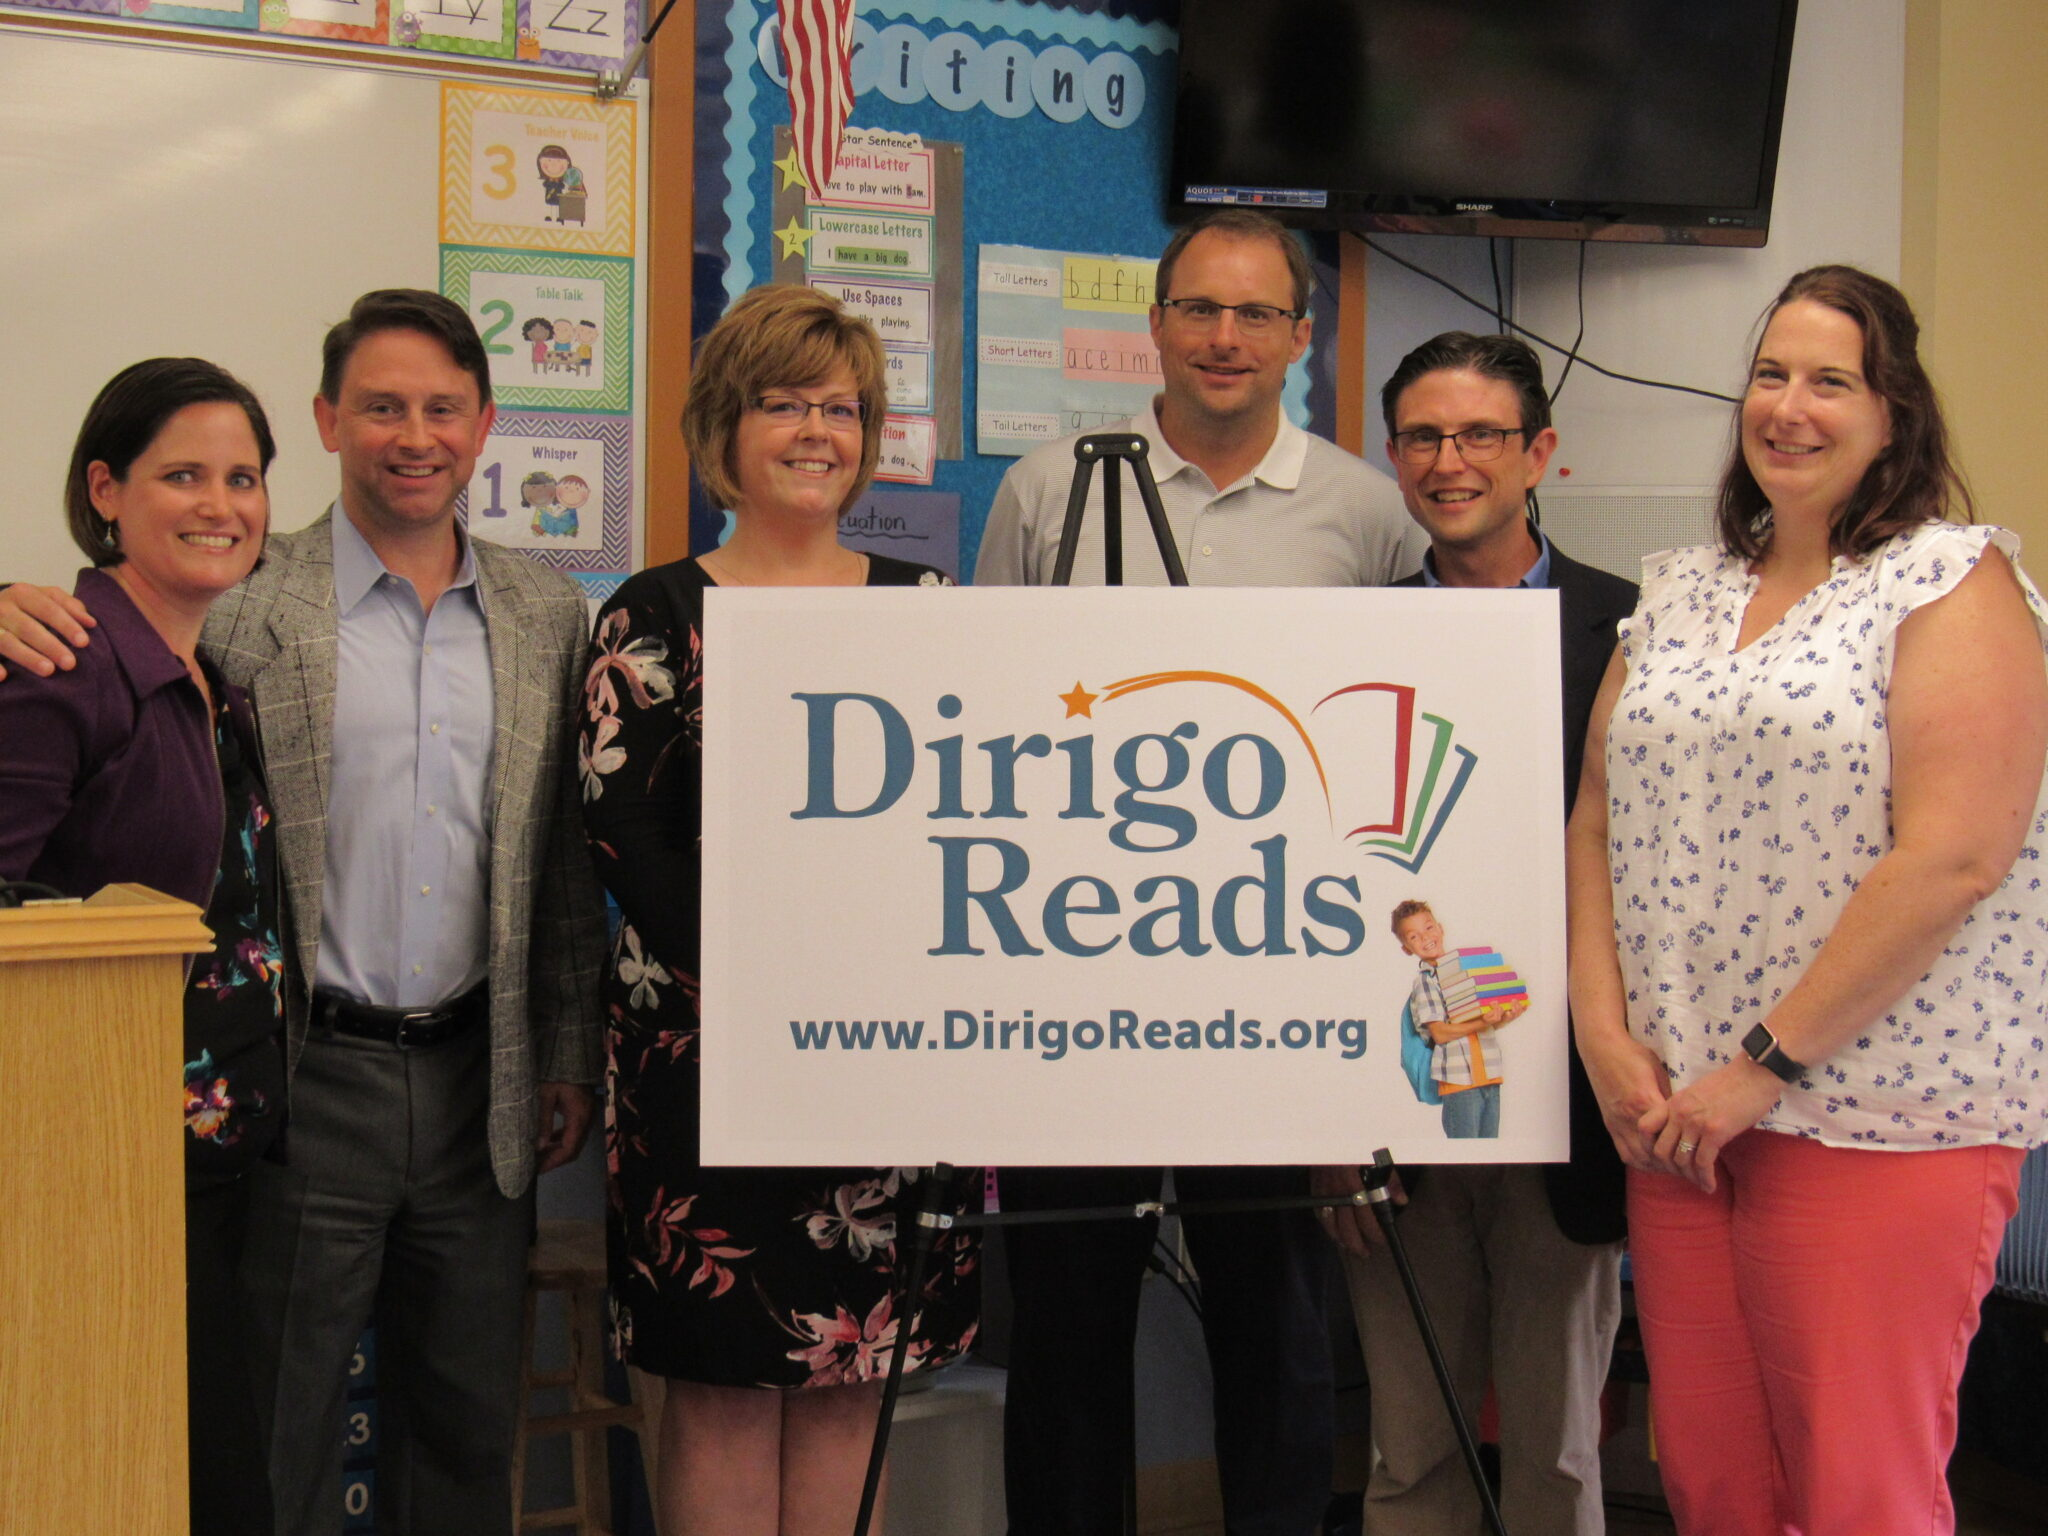 photo of dan and karen cashman with partners behind a dirigo reads poster